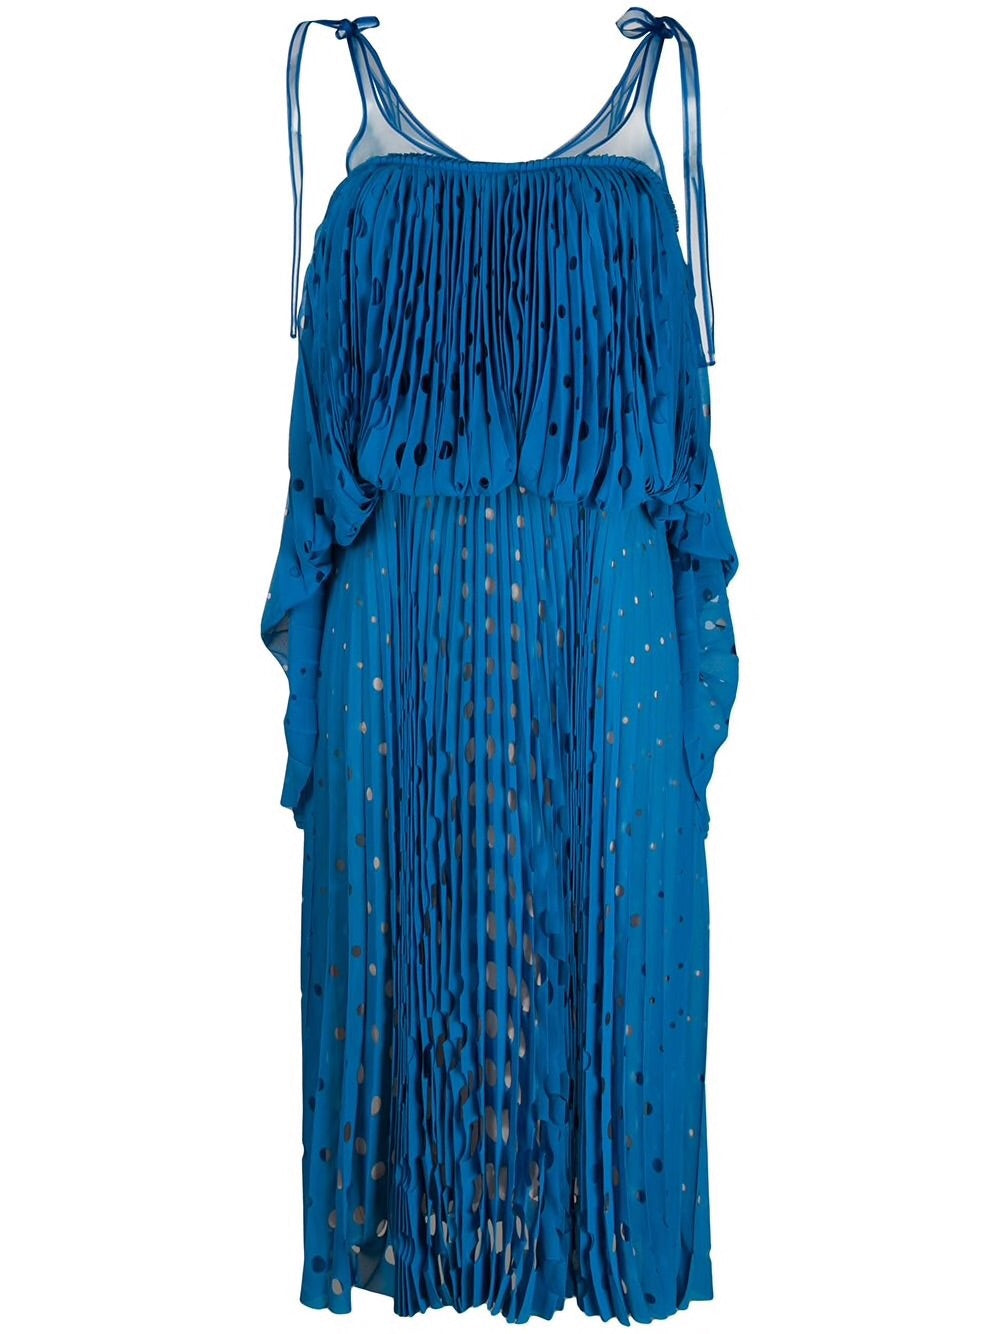 Cut-Out Pleated Dress